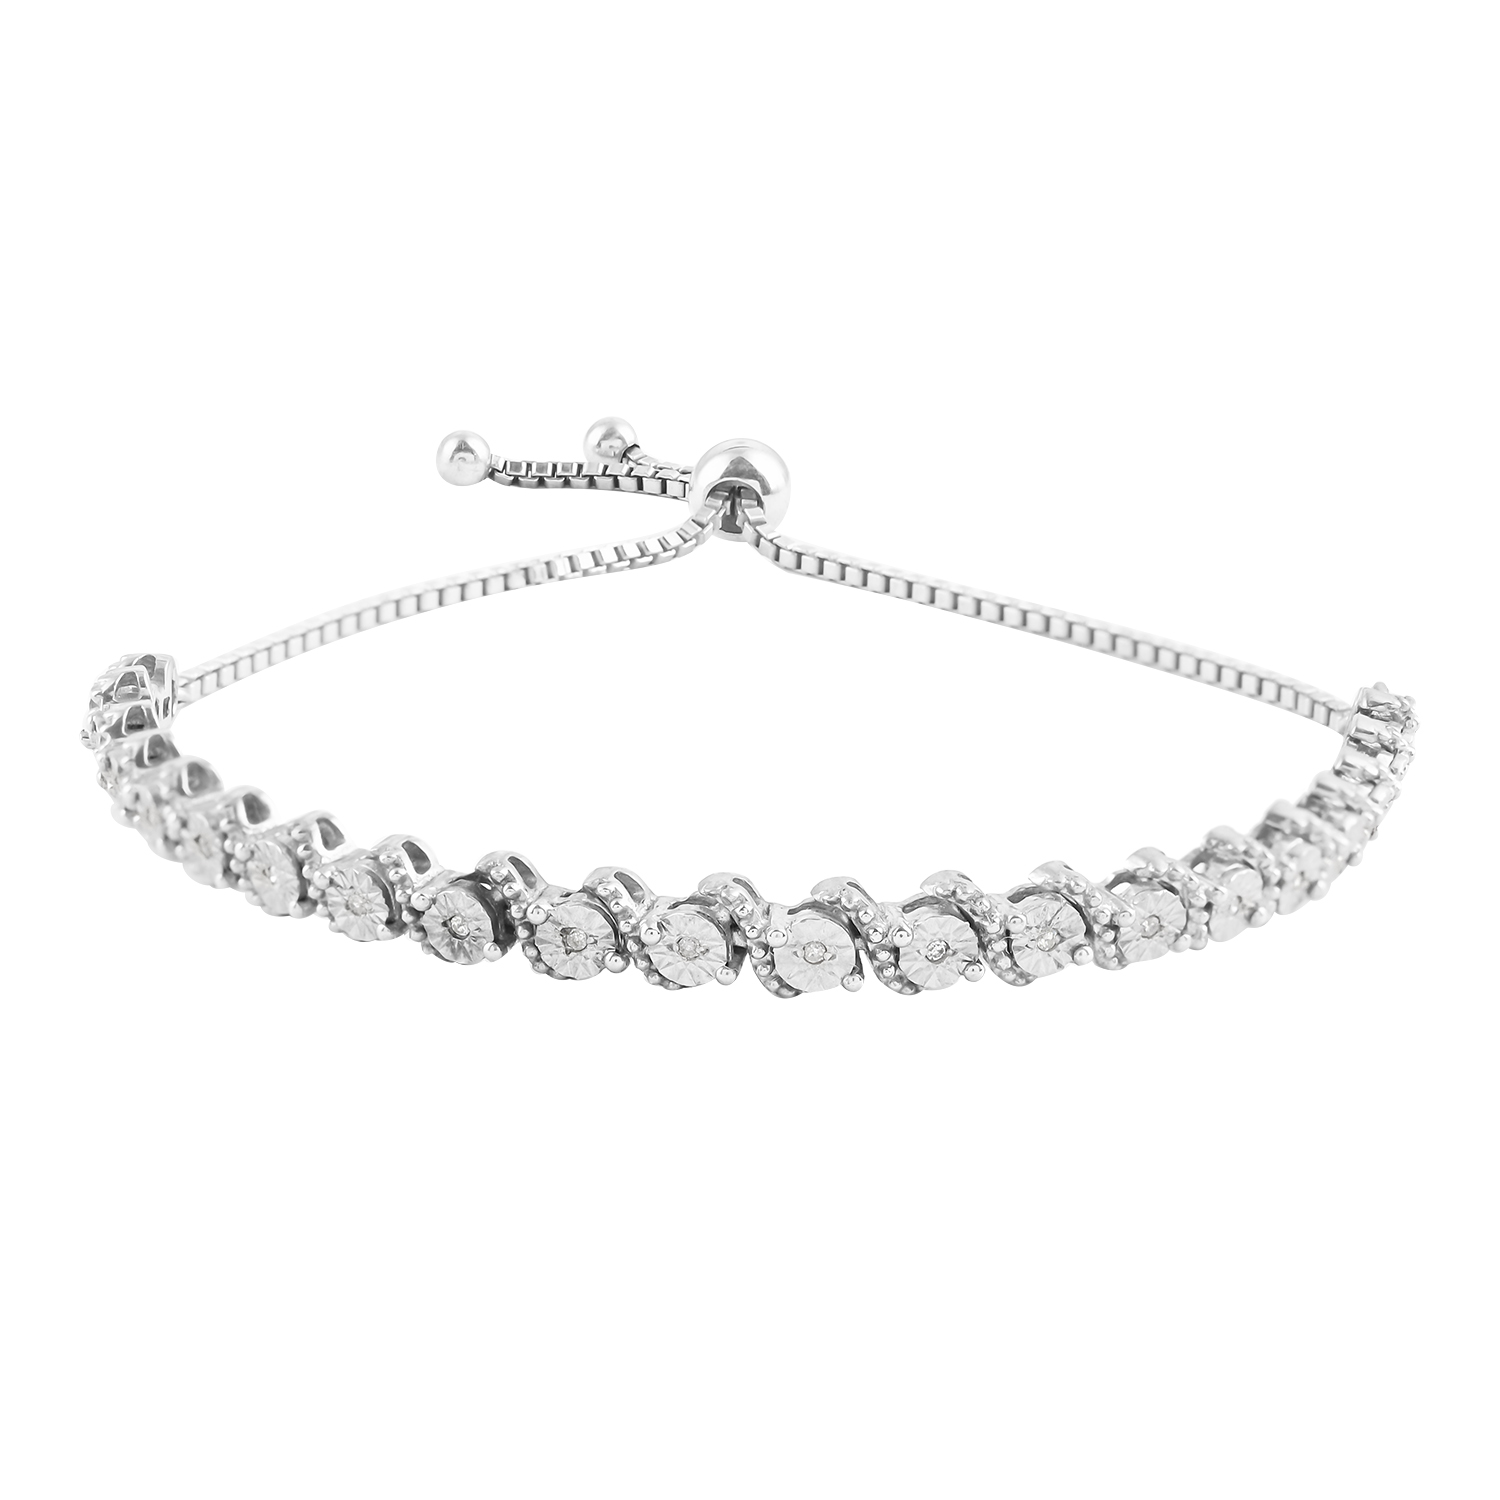 bolo silver platinum bracelet itm adjustable diamond in sterling over tdiaw